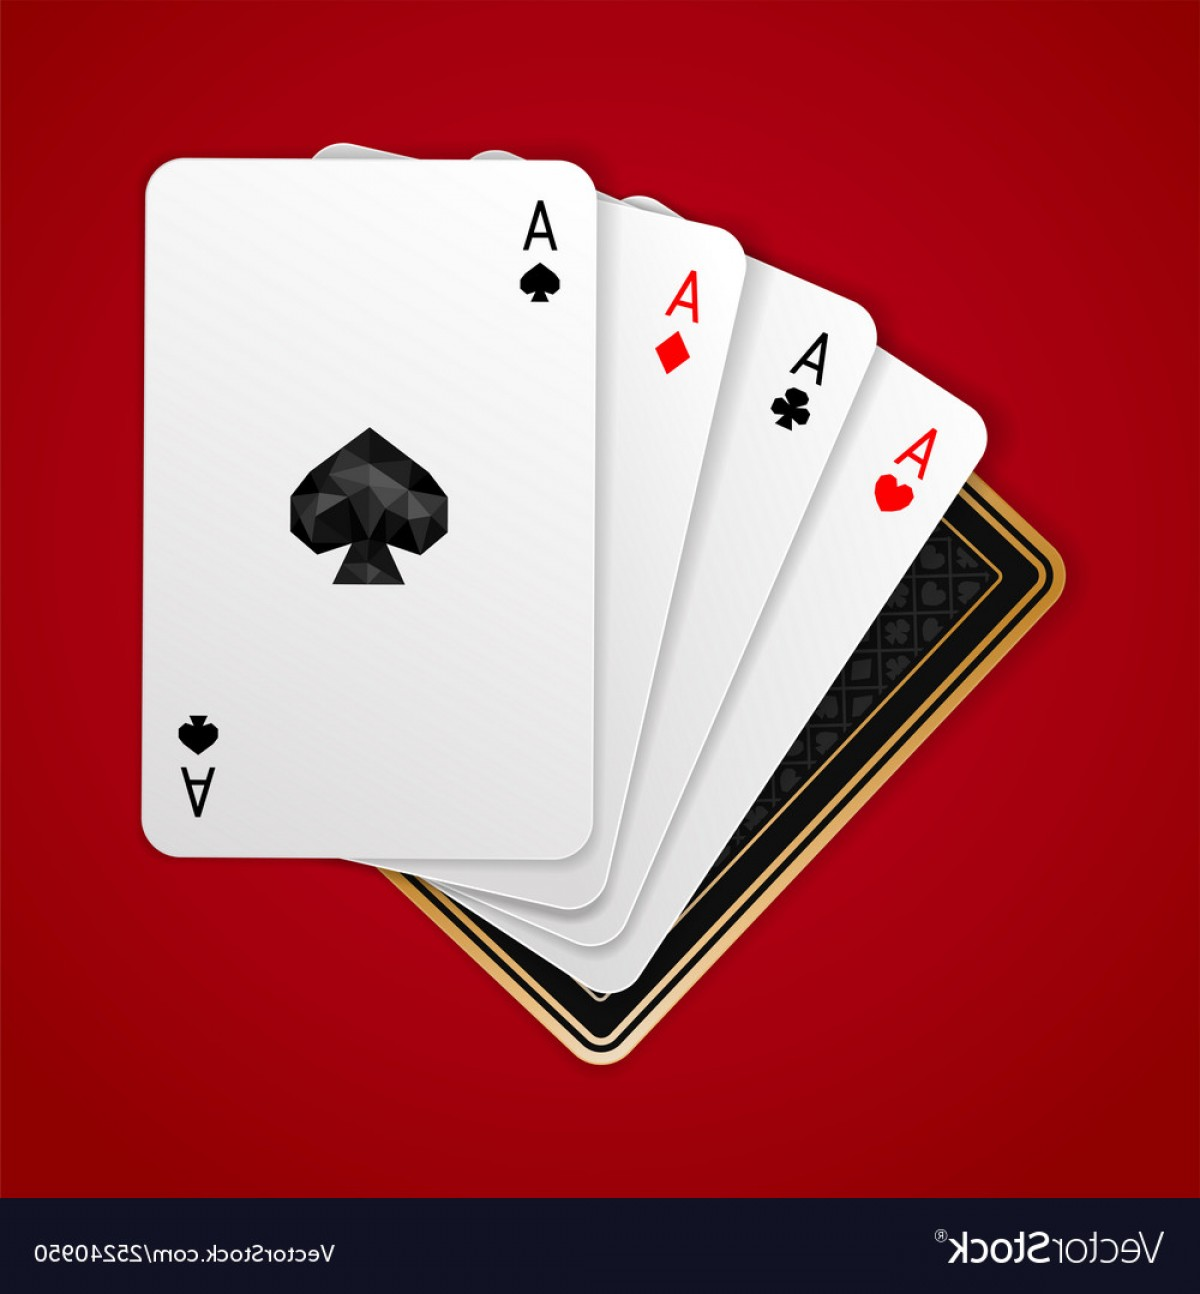 Poker Hand Vector: Four Aces In Five Playing Card Winning Poker Hand Vector